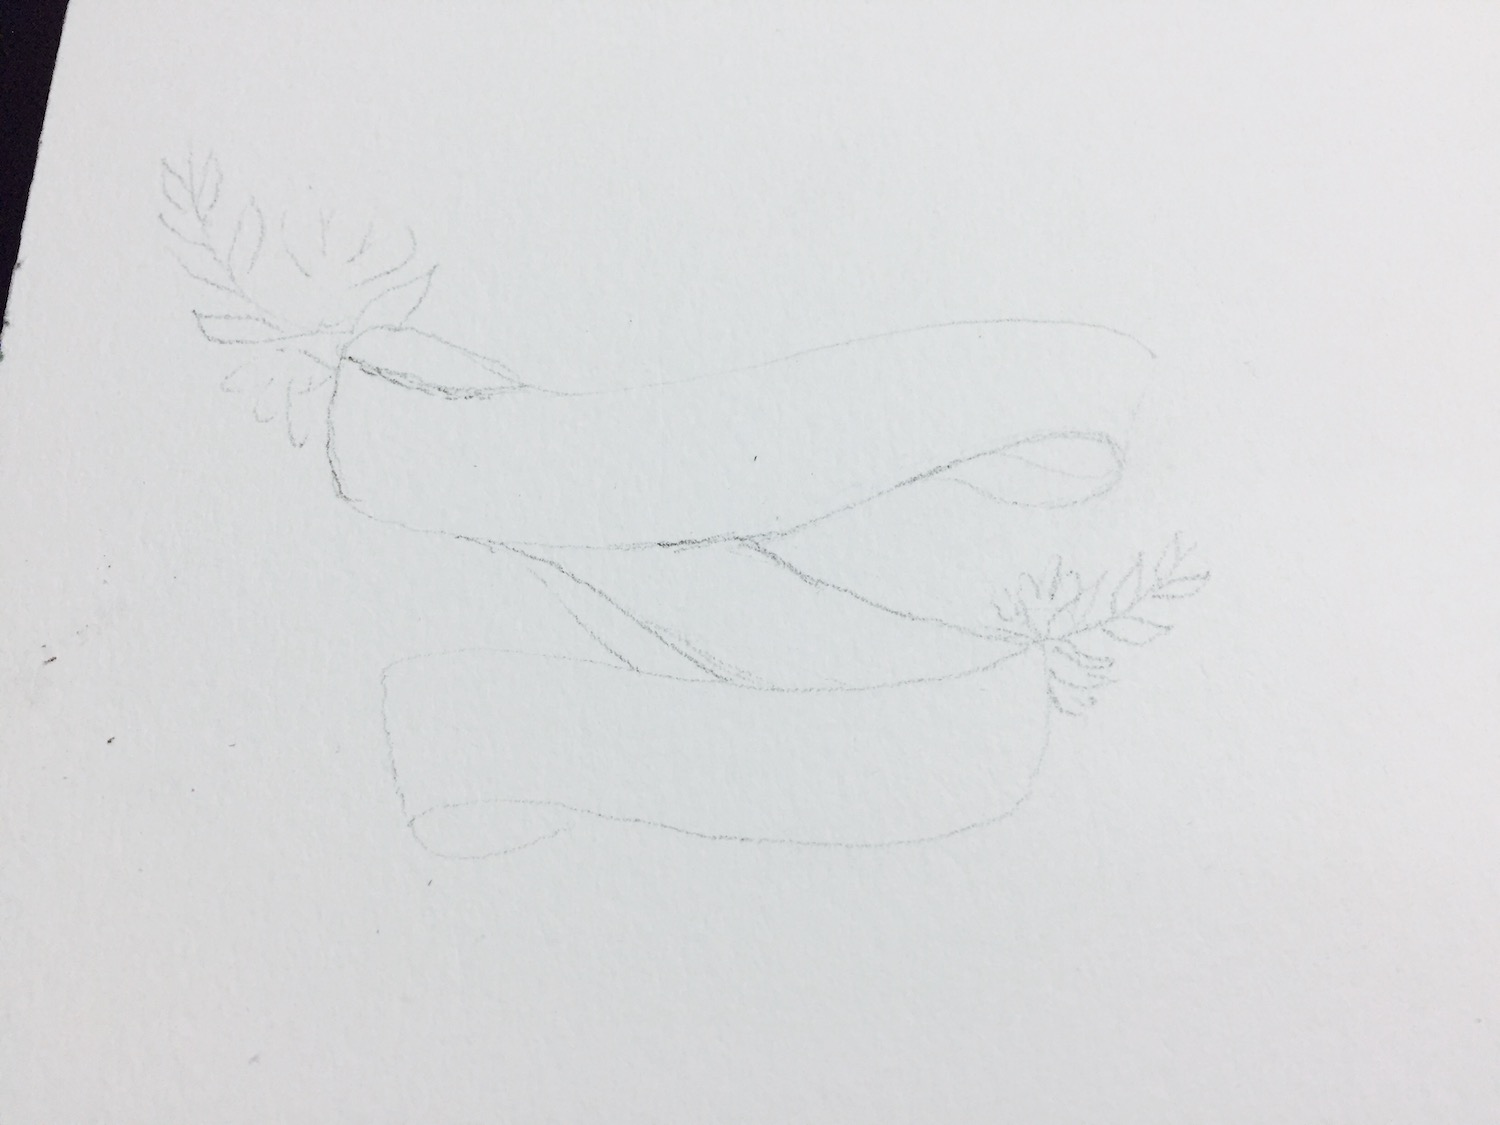 detailed pencil sketch of the watercolour floral bannner